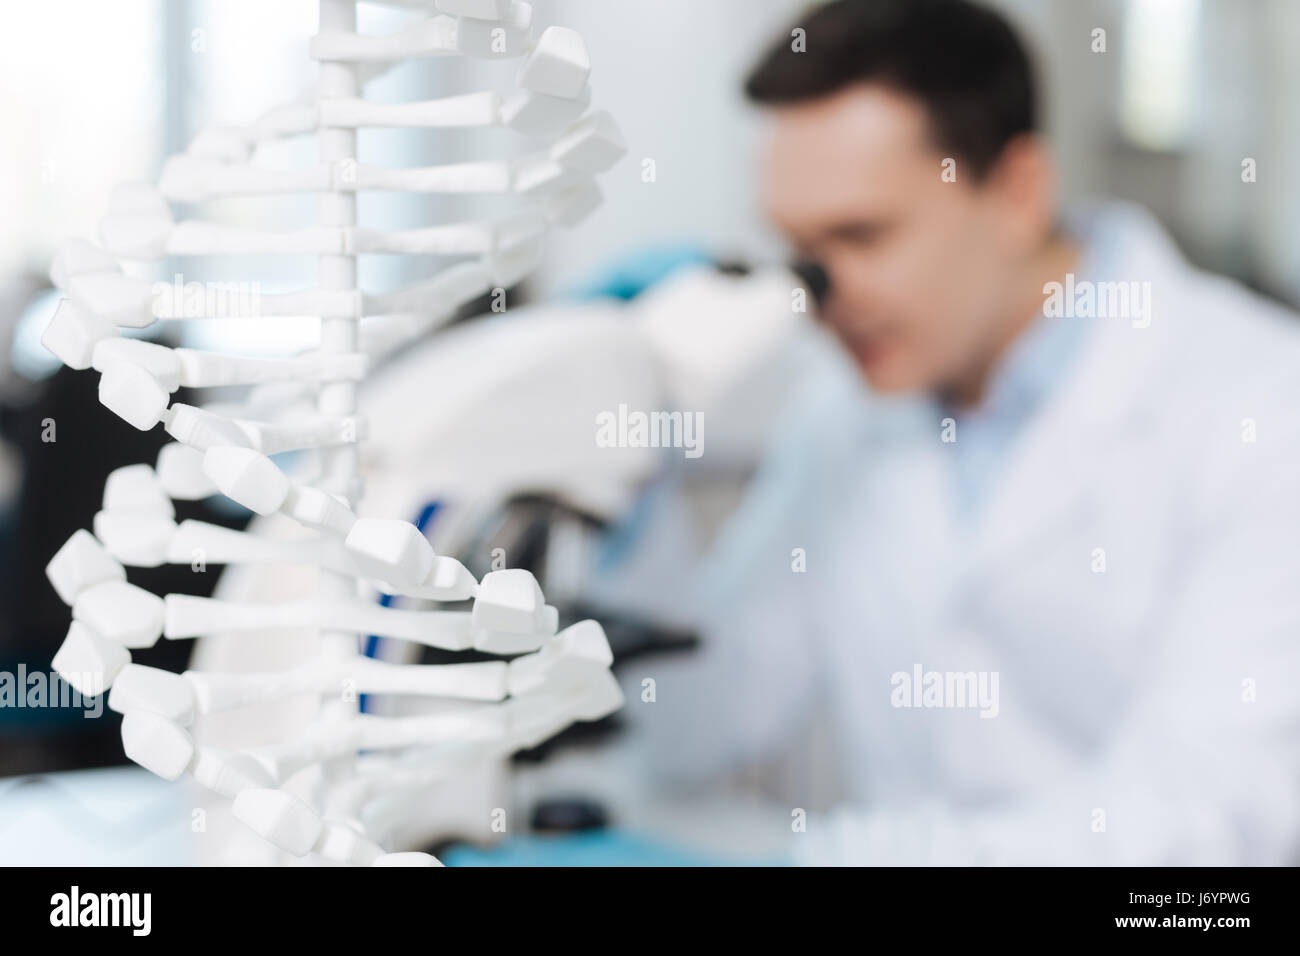 Close up of white model DNA helps in genetic researching - Stock Image